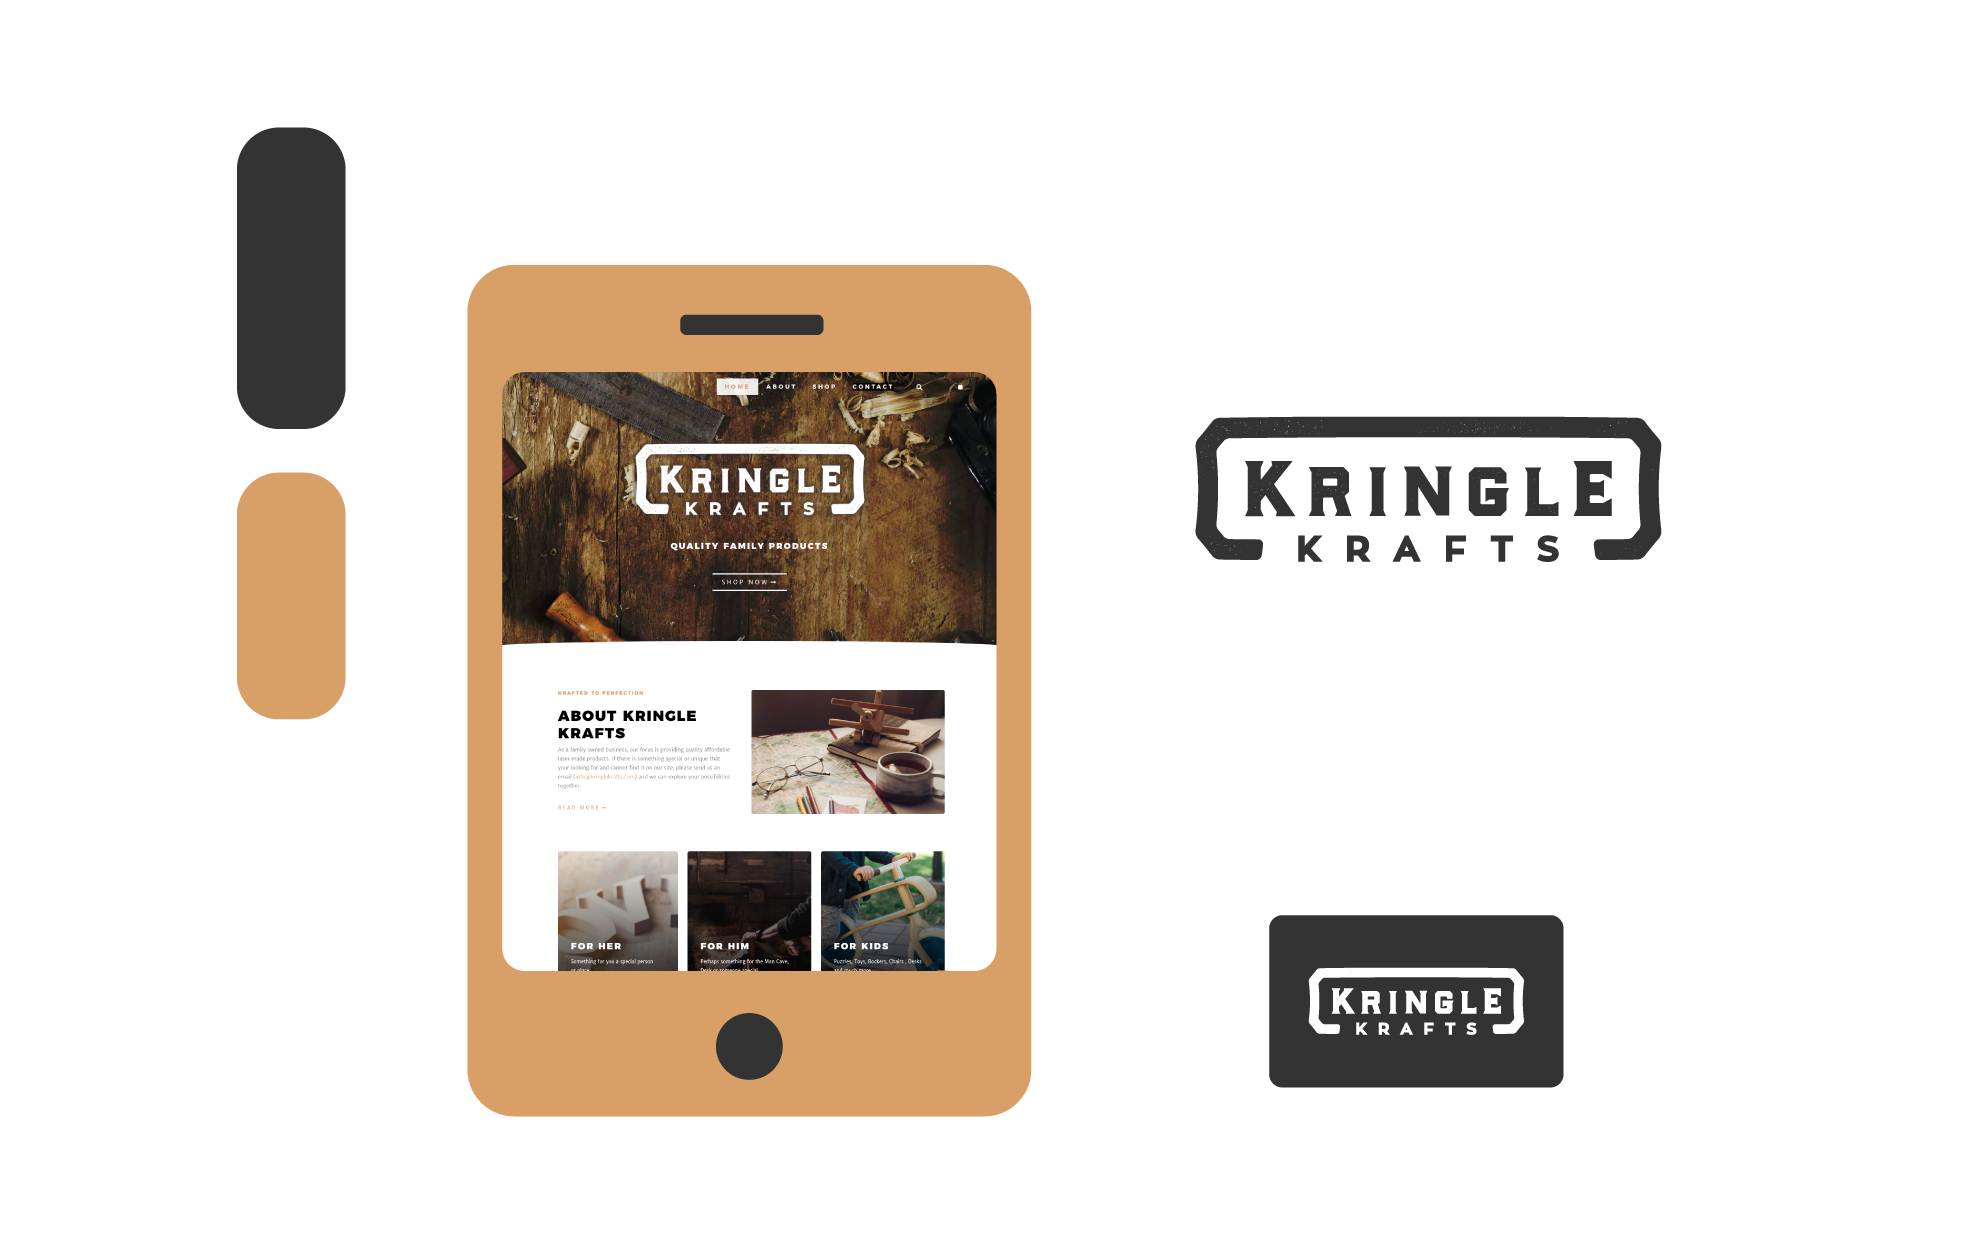 Freelance Graphic Design - Kringle Krafts Branding Feature